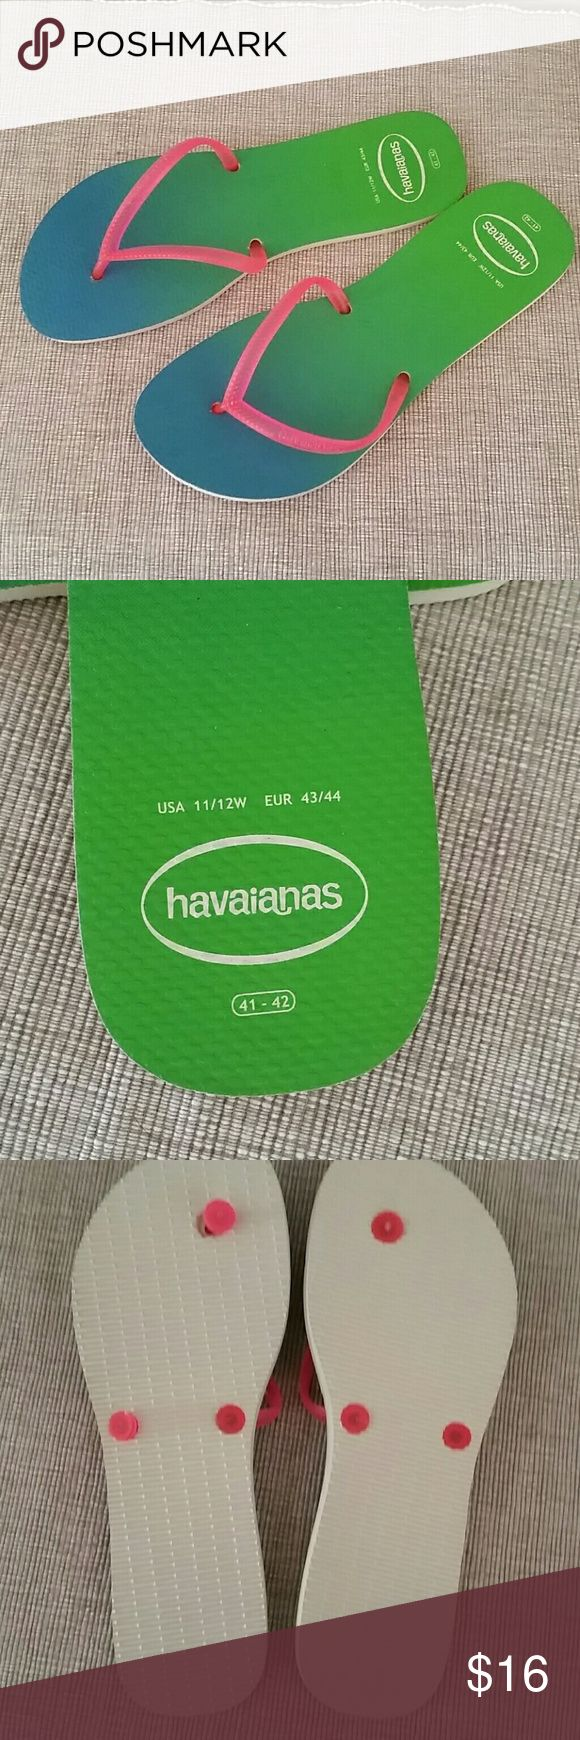 NWOT Havaianas ombre blue green pink flip flops 11 New Havaianas flip flops, size 11/12, pink with blue green ombre Havaianas Shoes Sandals